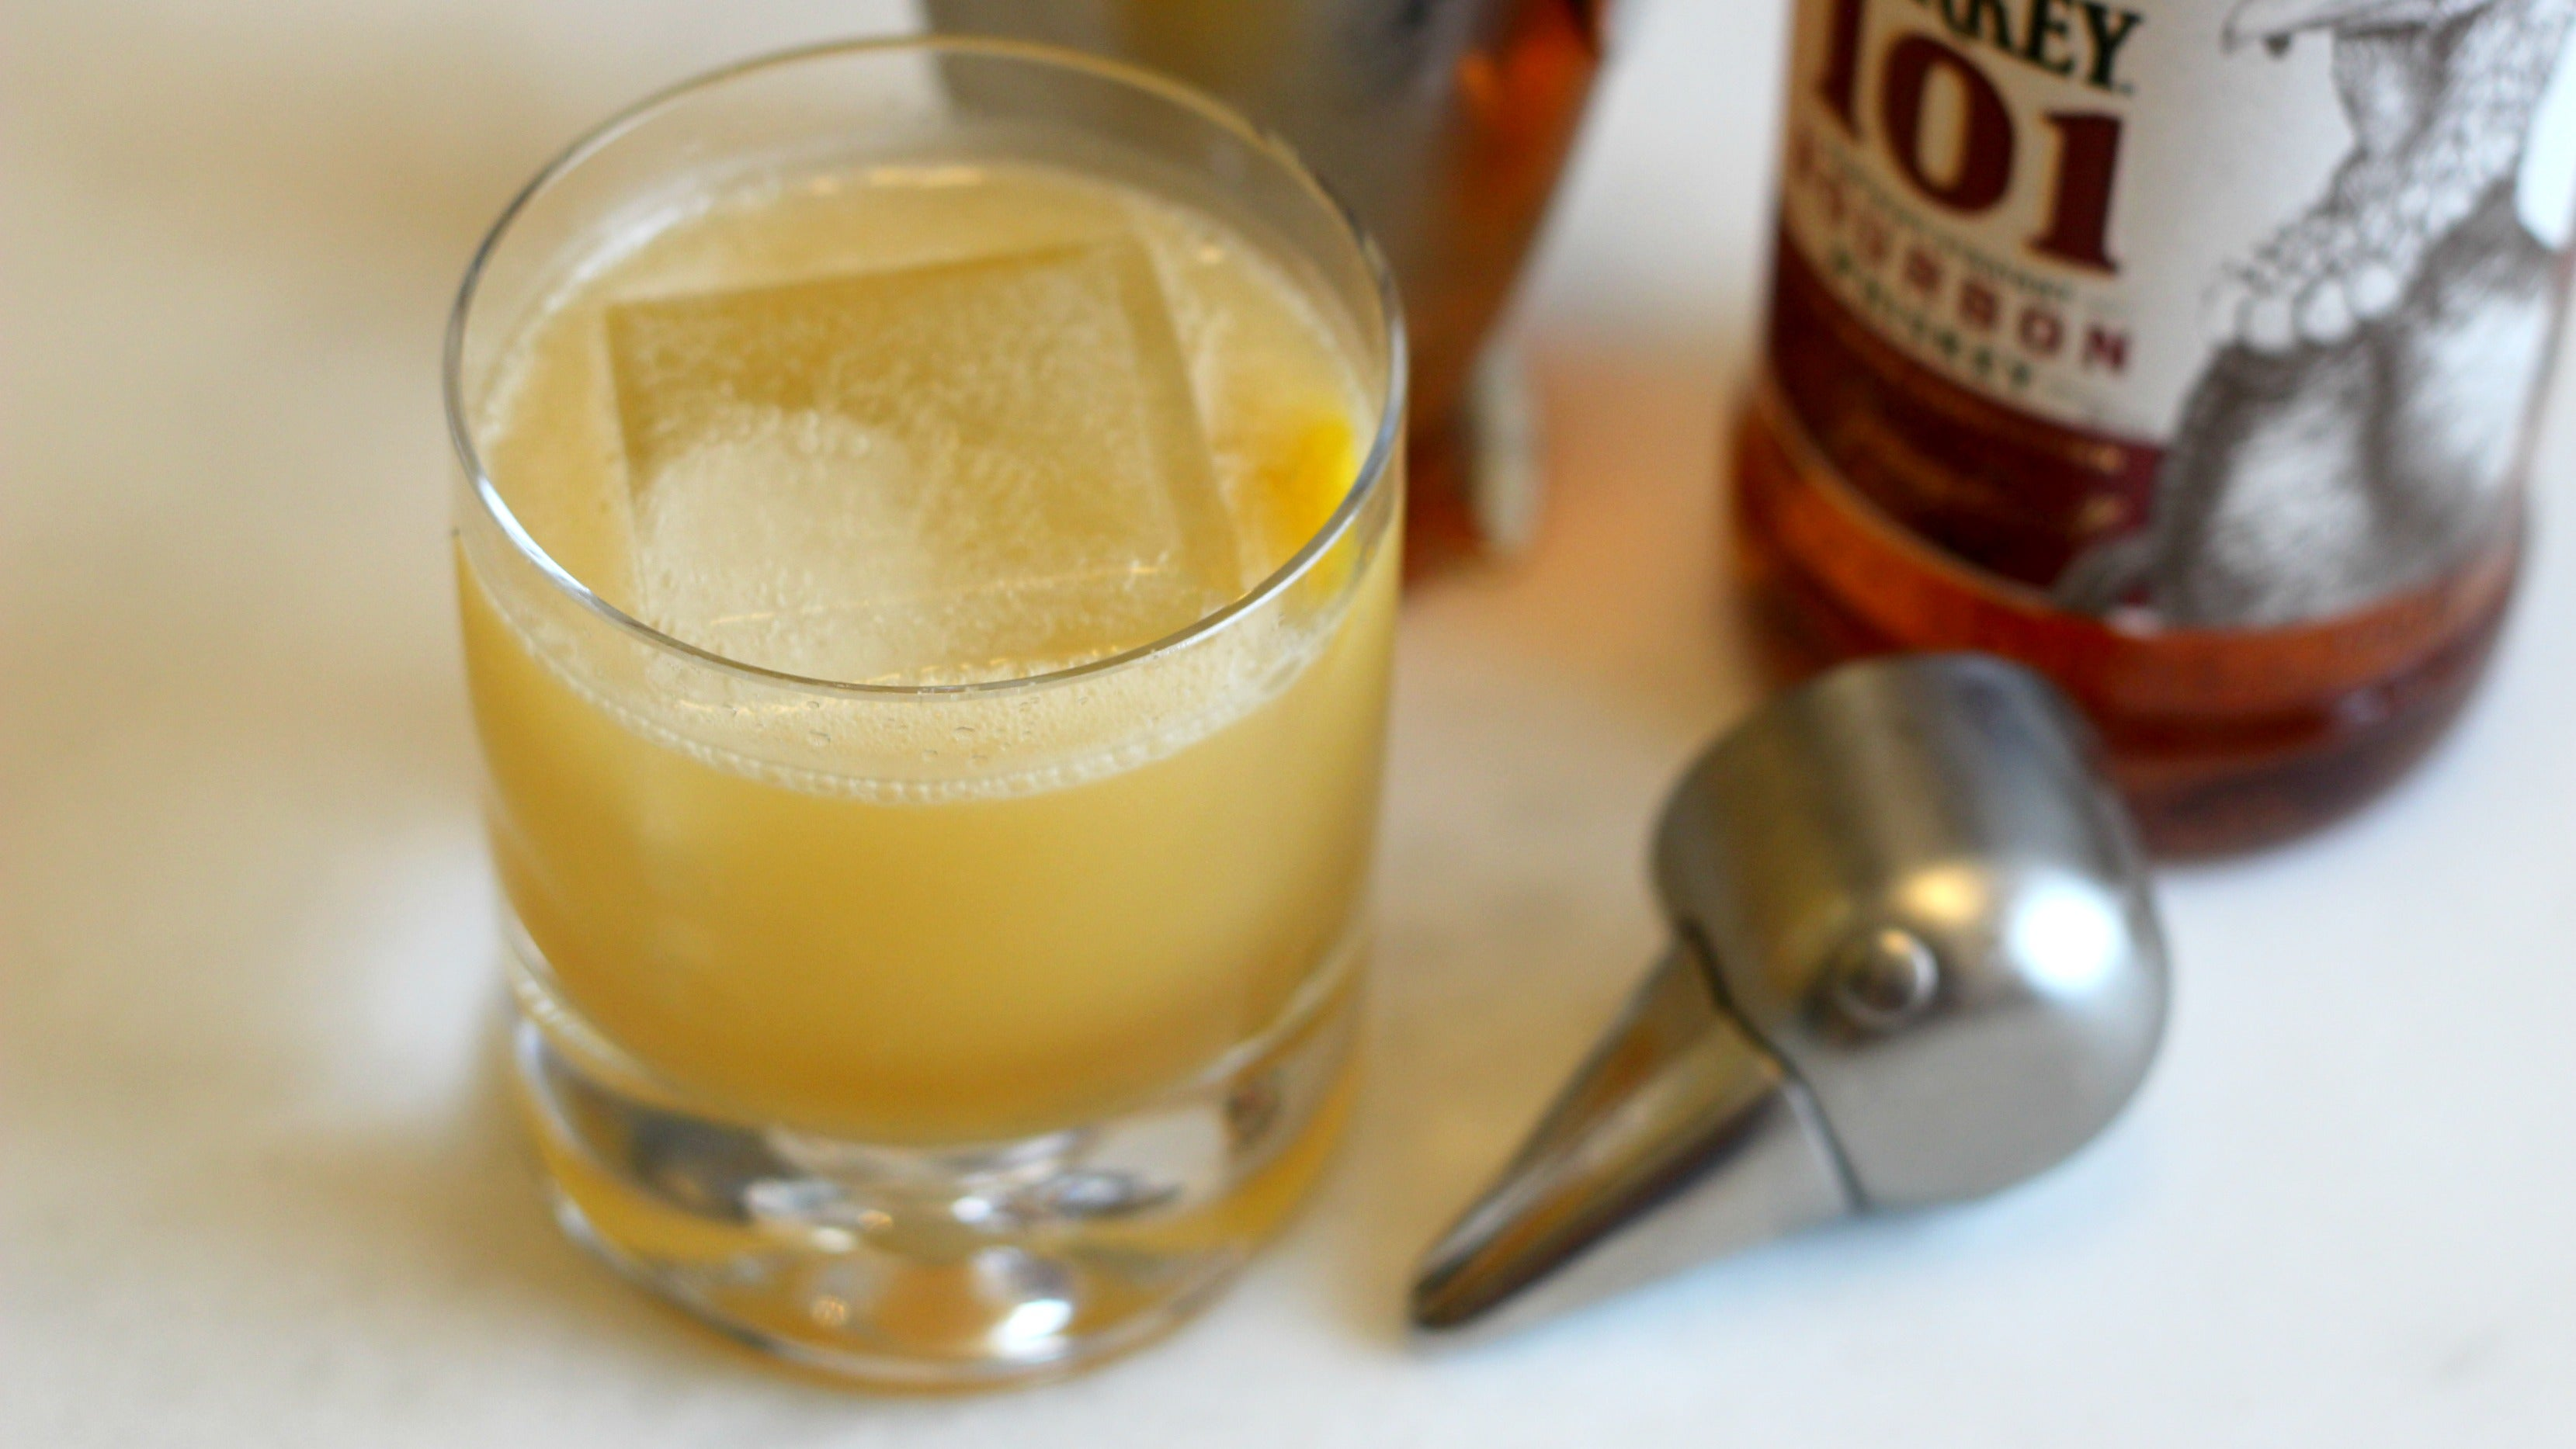 3-Ingredient Happy Hour: The Gold Rush